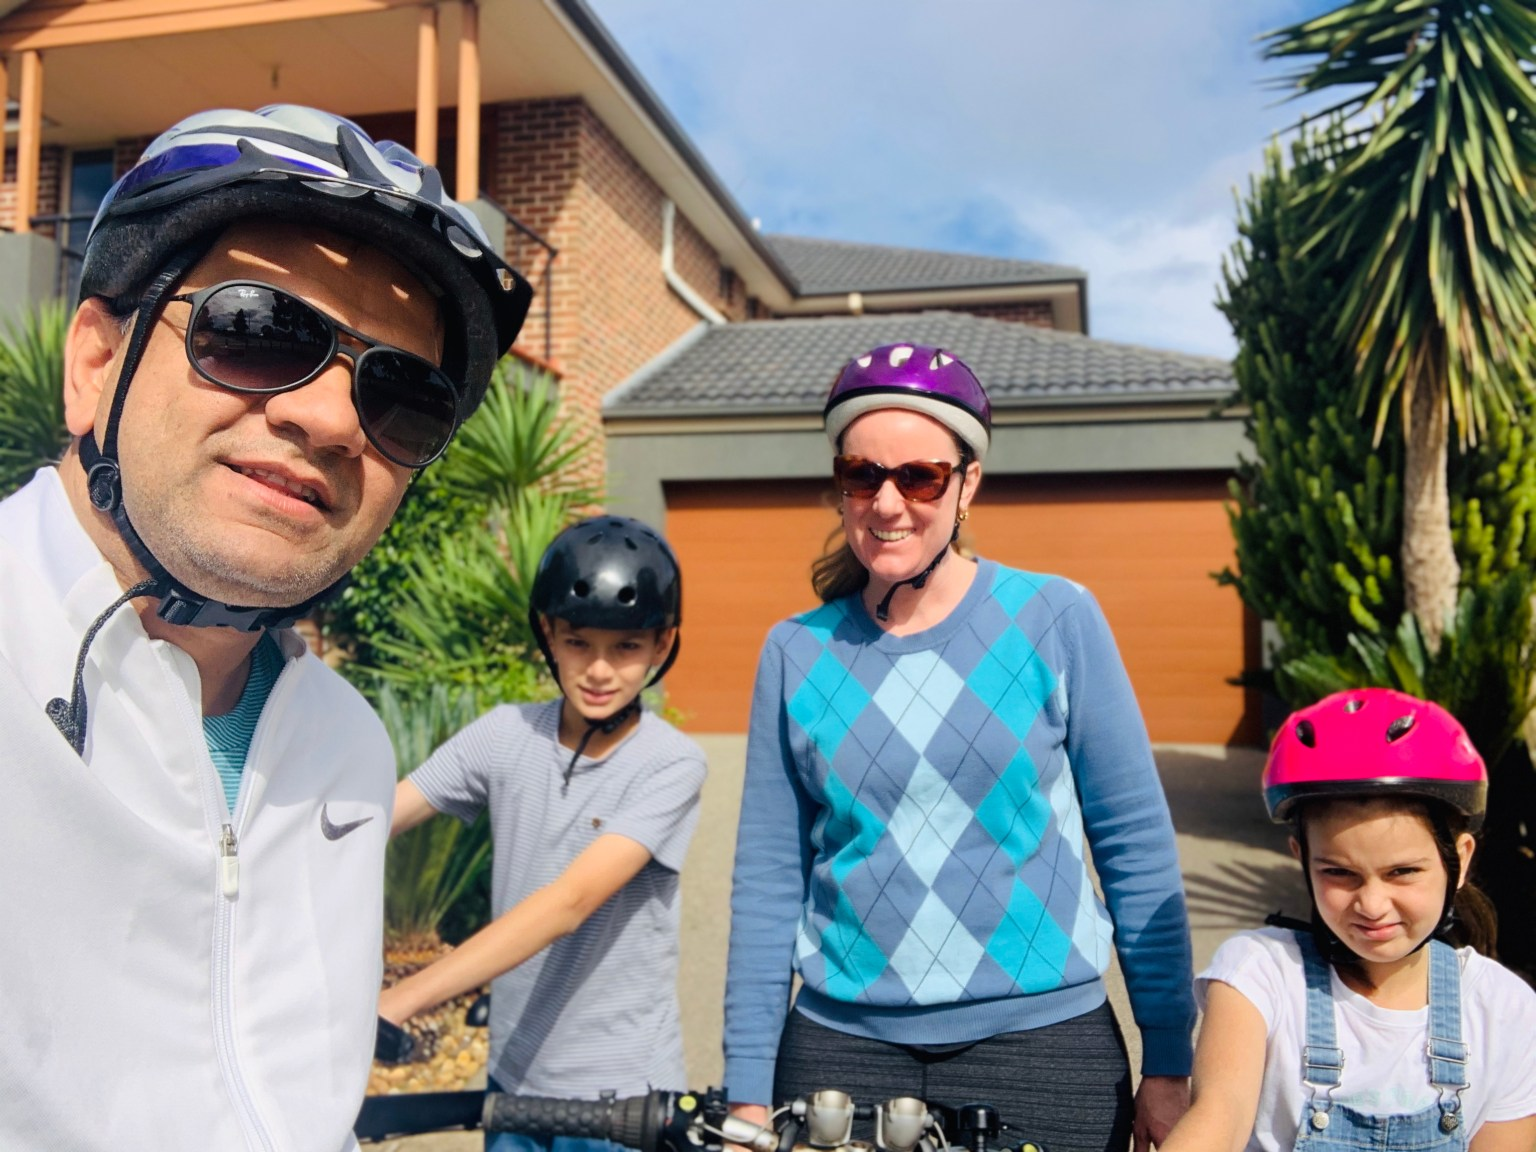 Stay home – Fun for Family